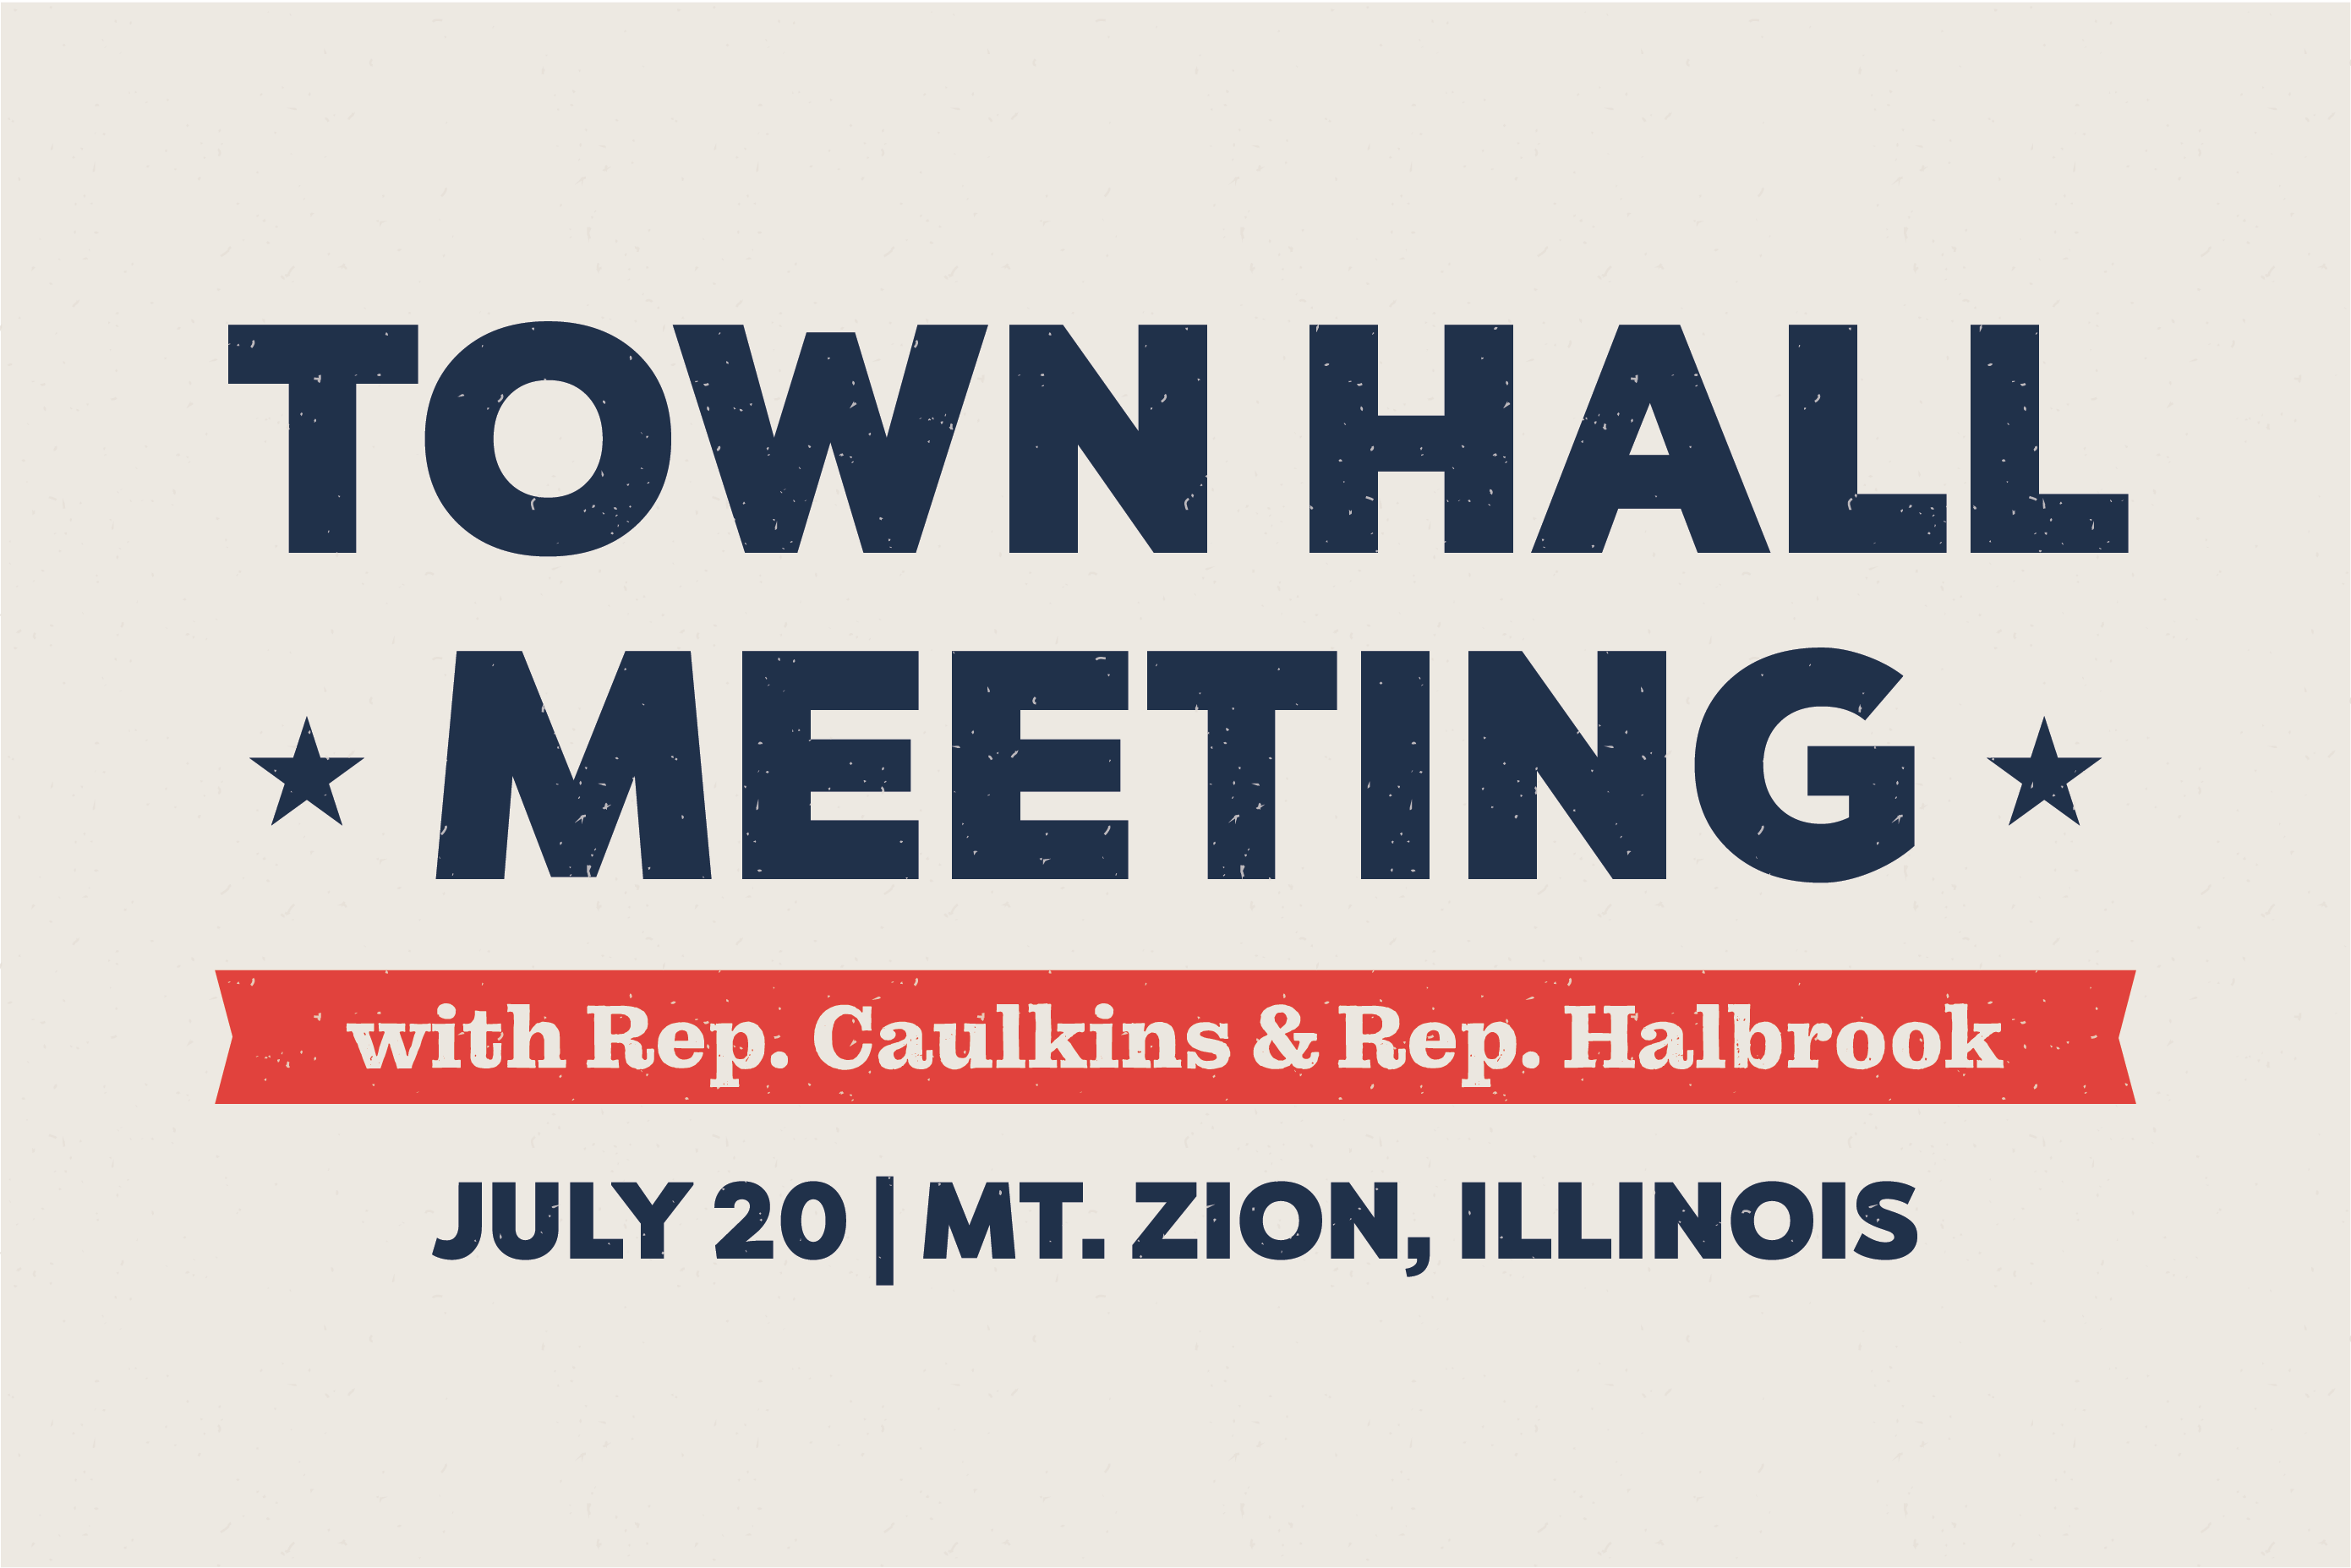 https://d3n8a8pro7vhmx.cloudfront.net/ilhousegop/mailings/5747/attachments/original/Town_Hall_Meeting_July_20_Web.png?1626102386